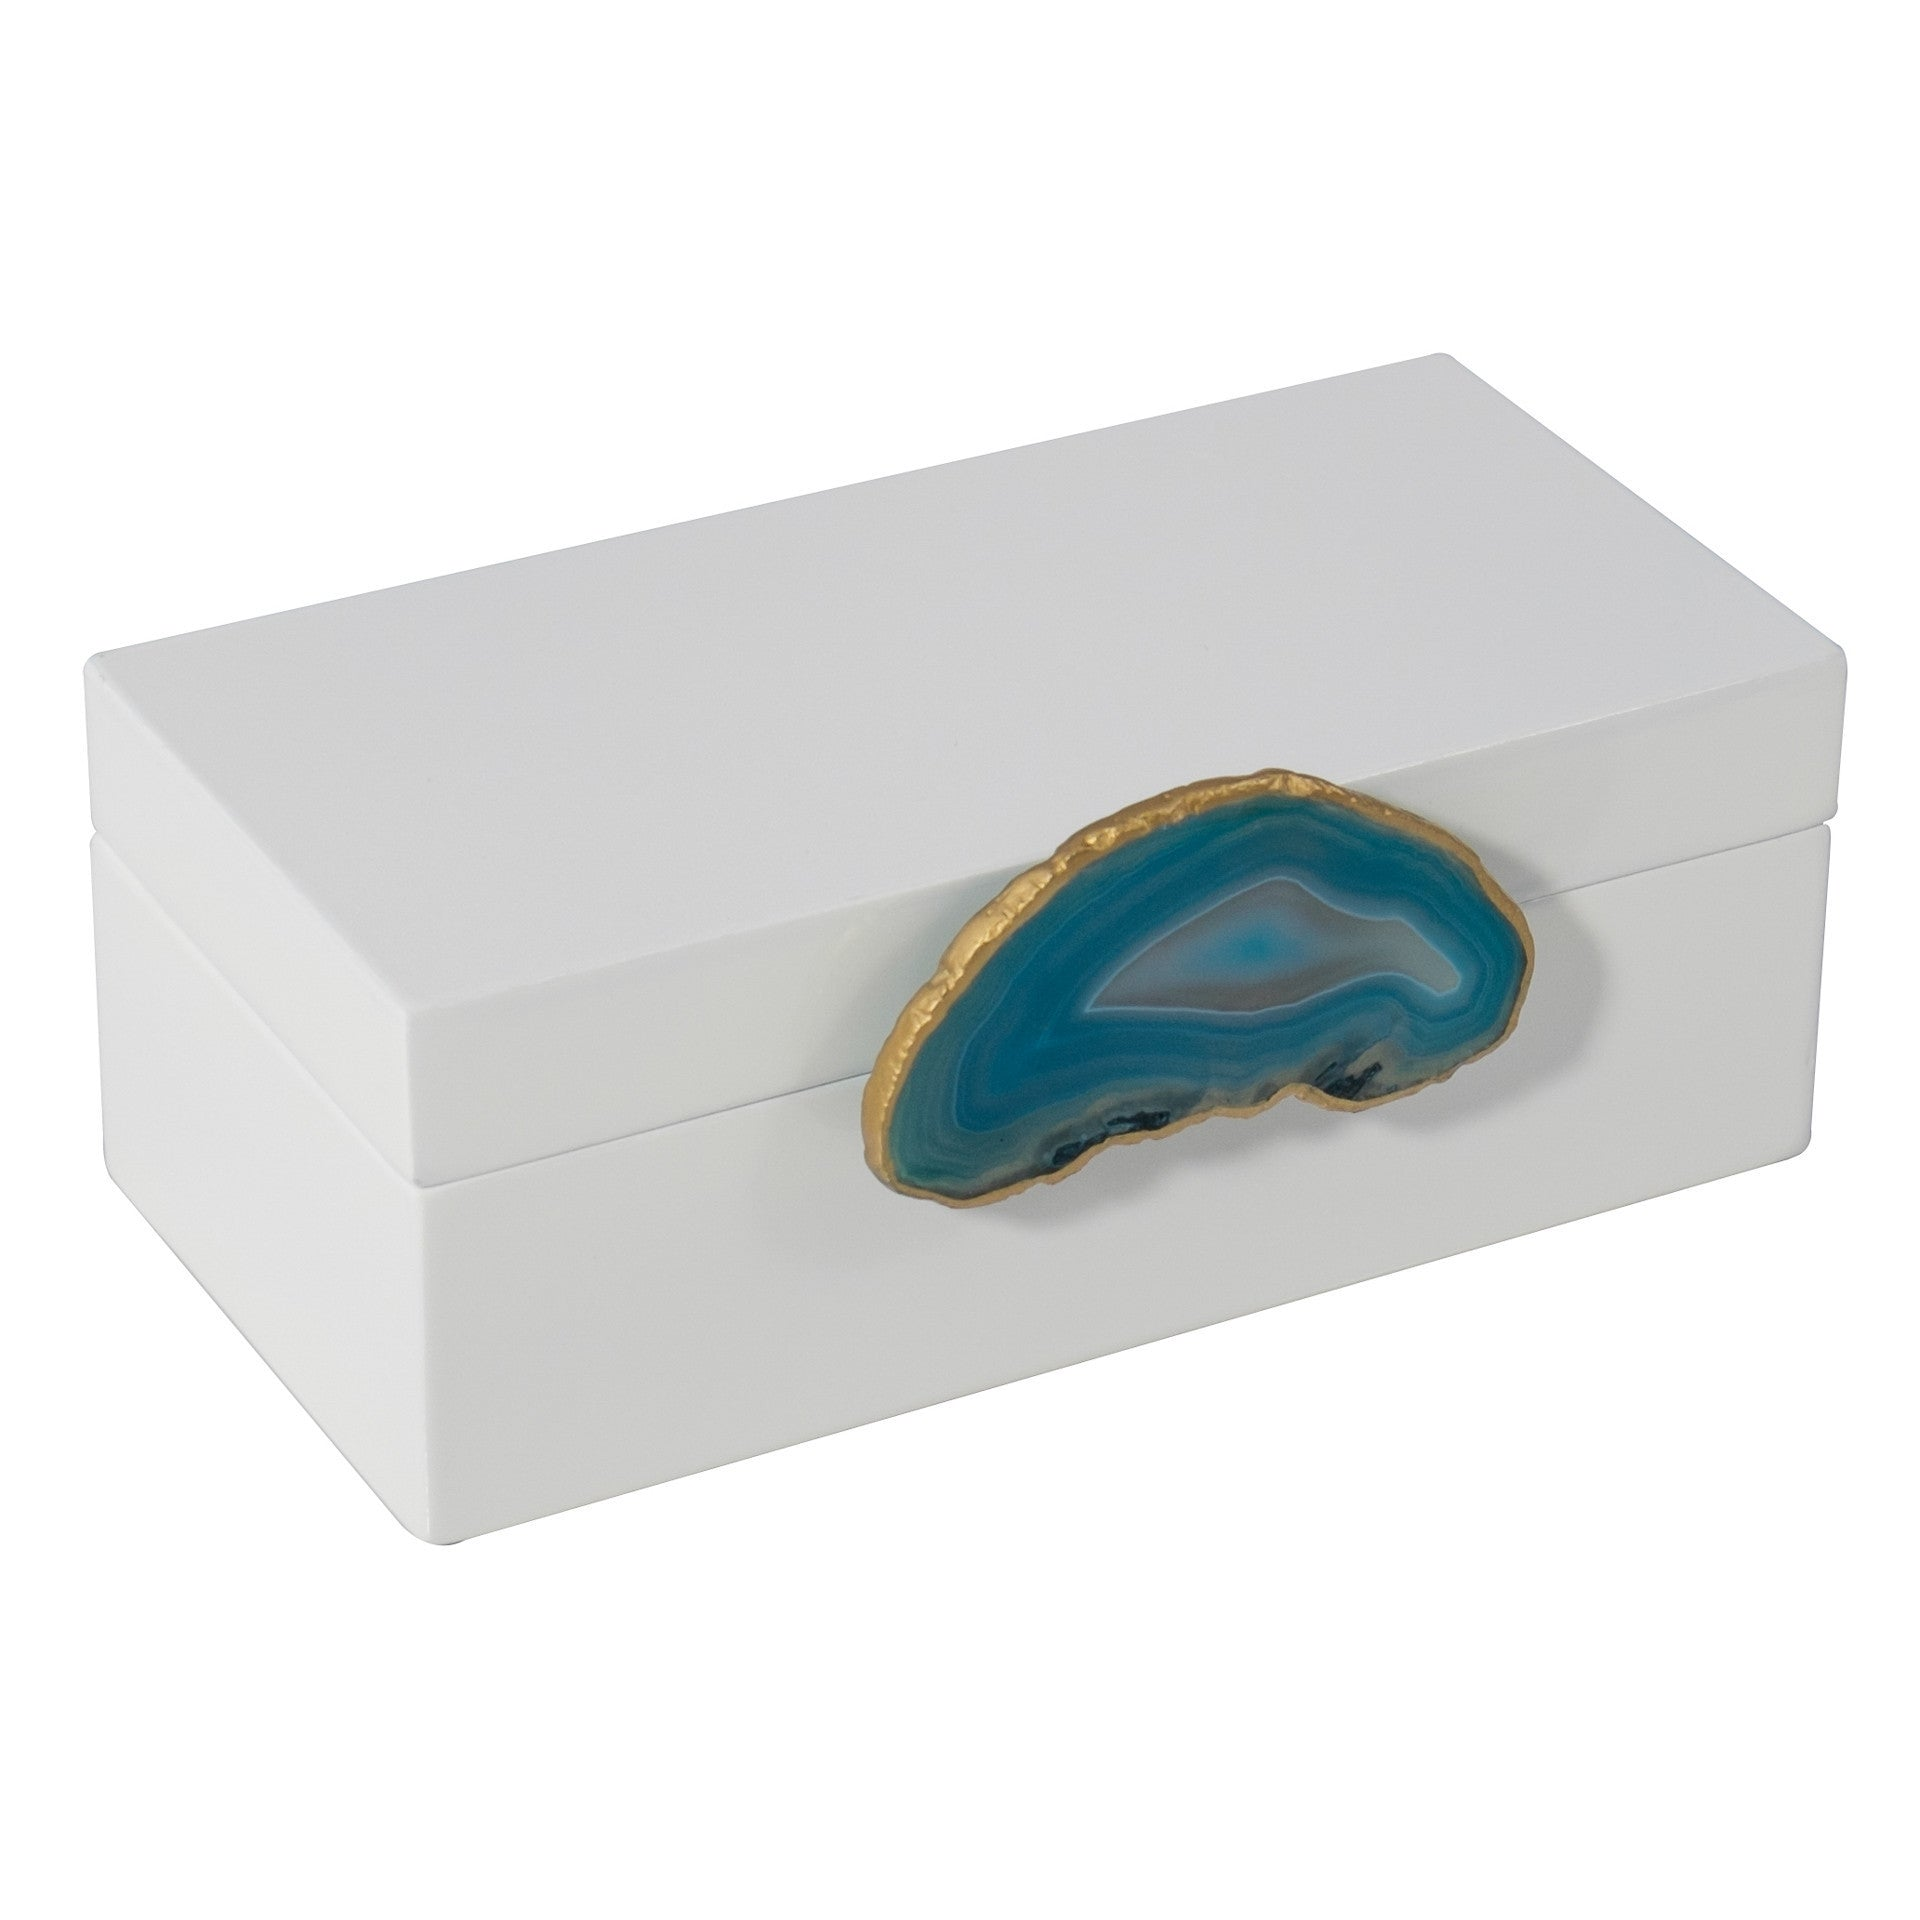 Medium White Lacquer Box with Teal Agate Knob